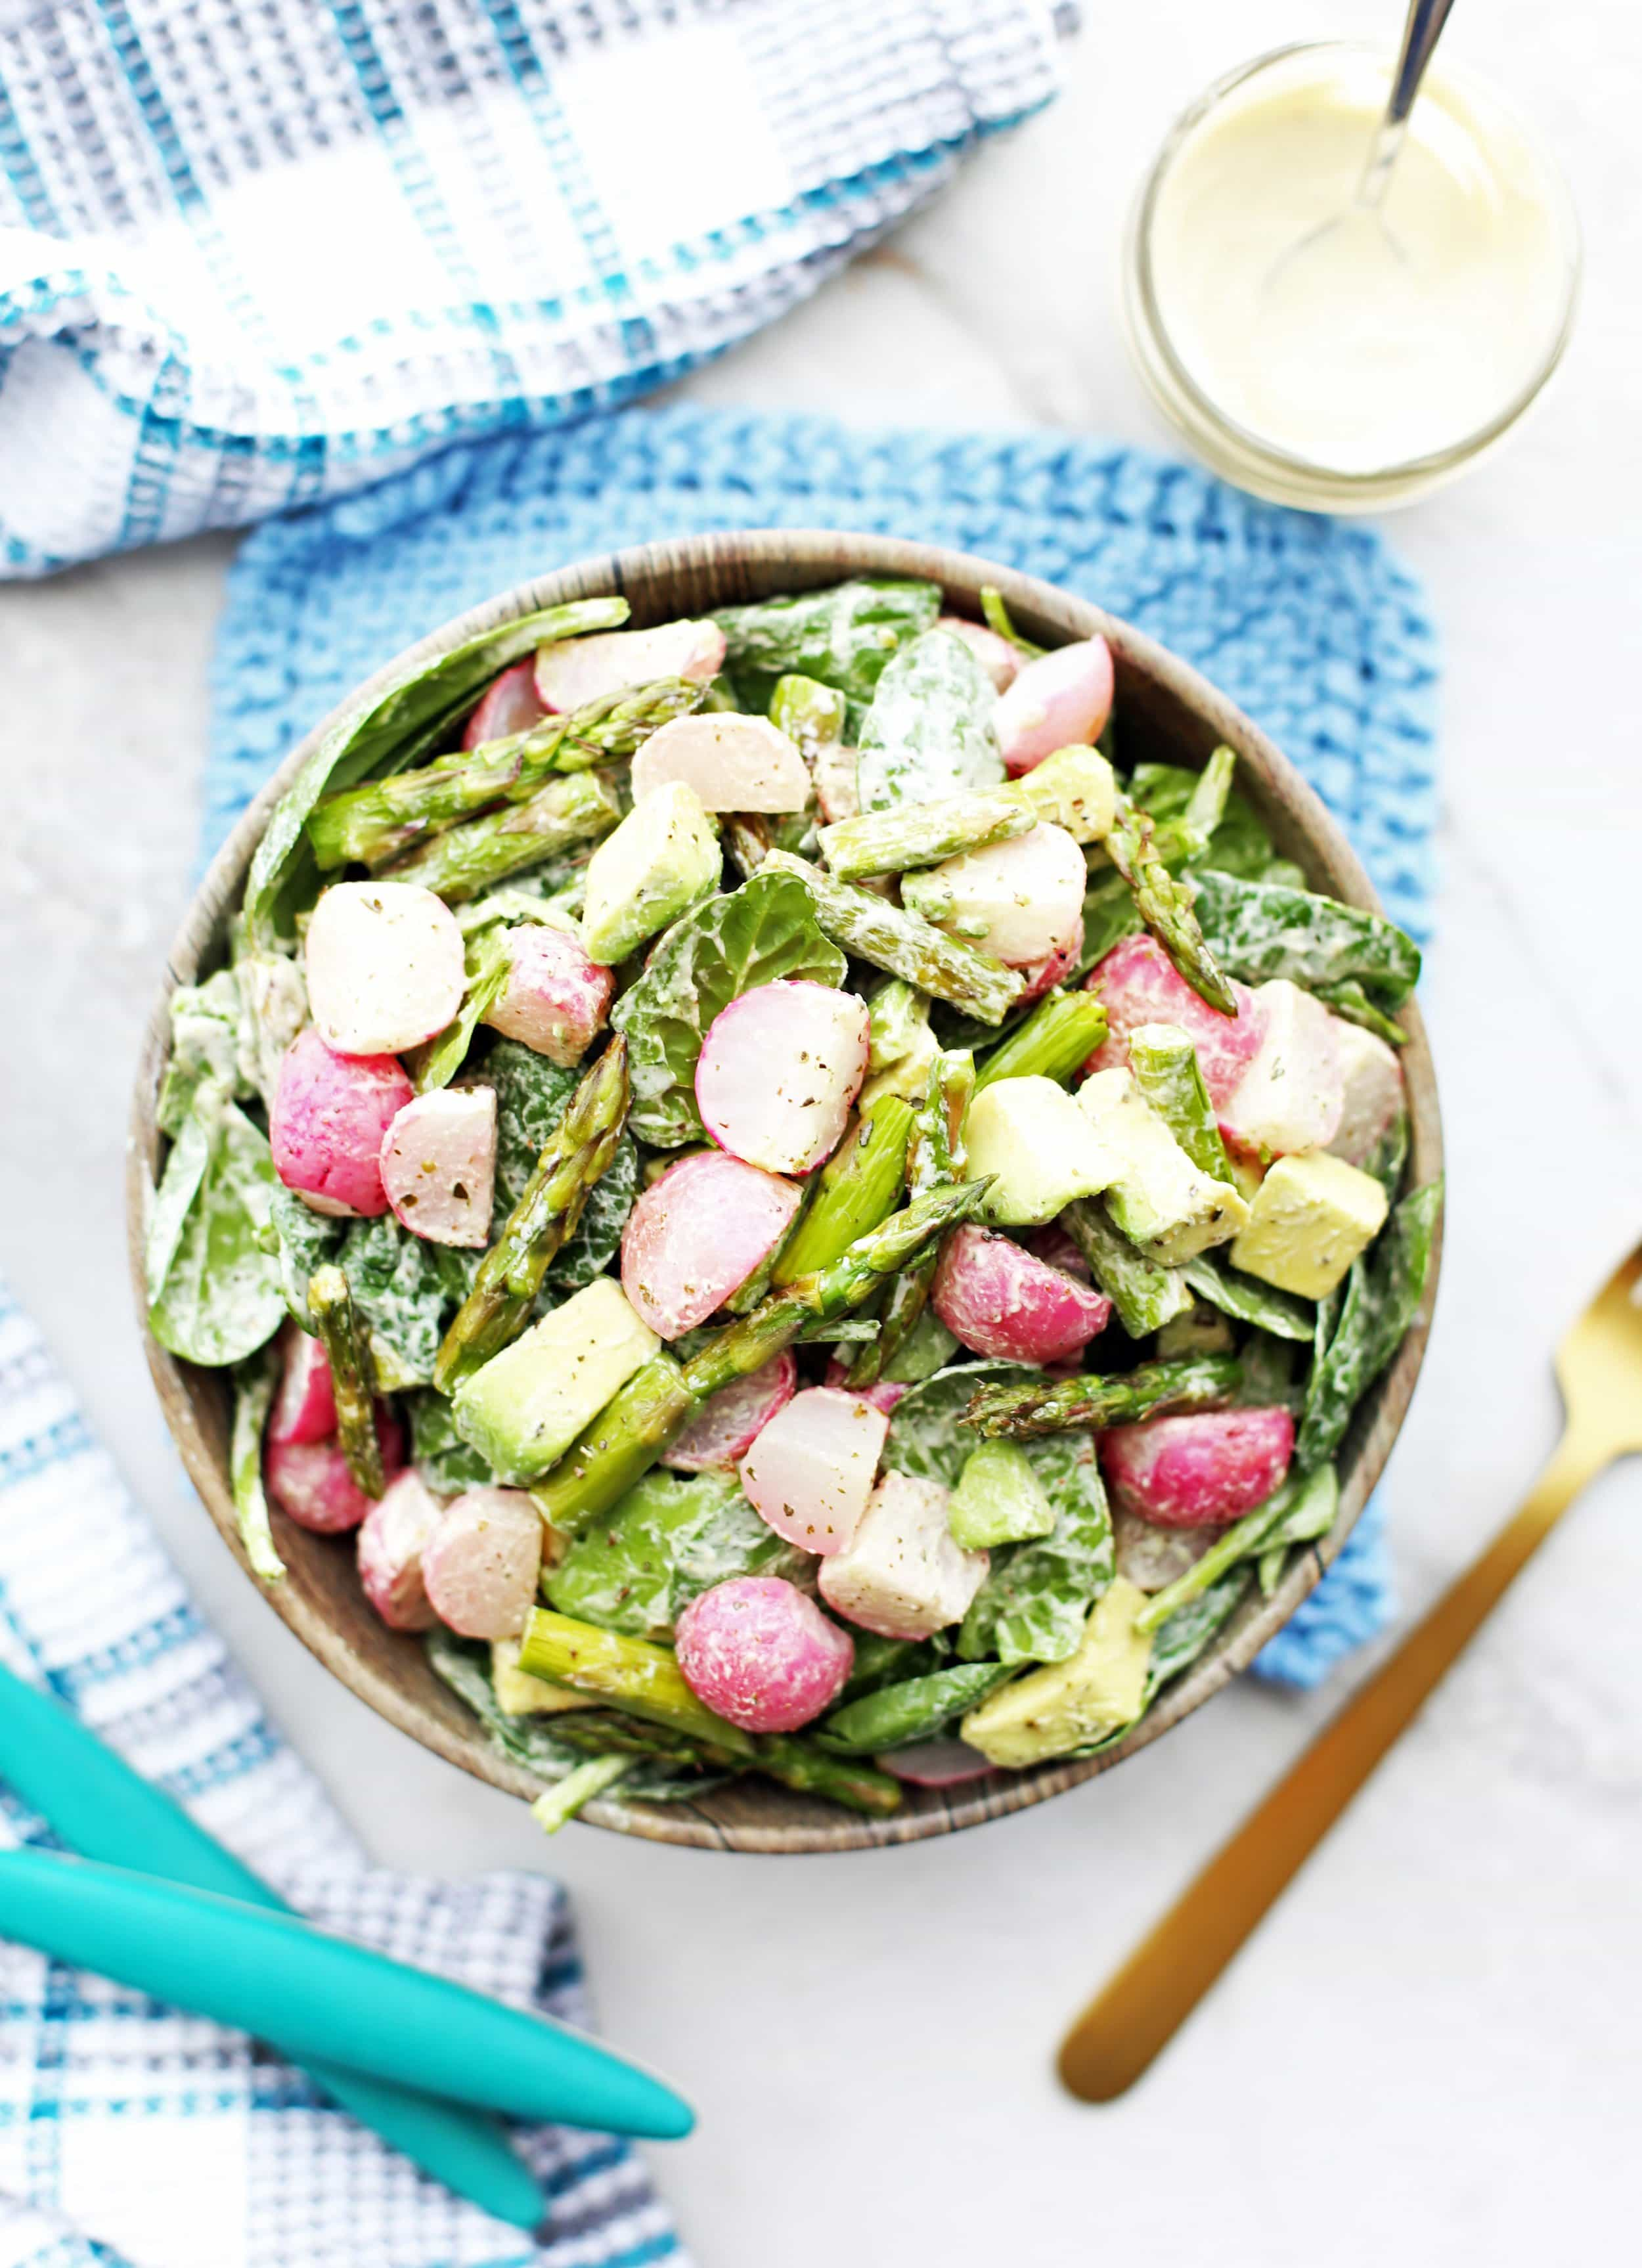 Overhead Roasted Asparagus and Radish Salad with Creamy Garlic Cashew Dressing in a wooden bowl.